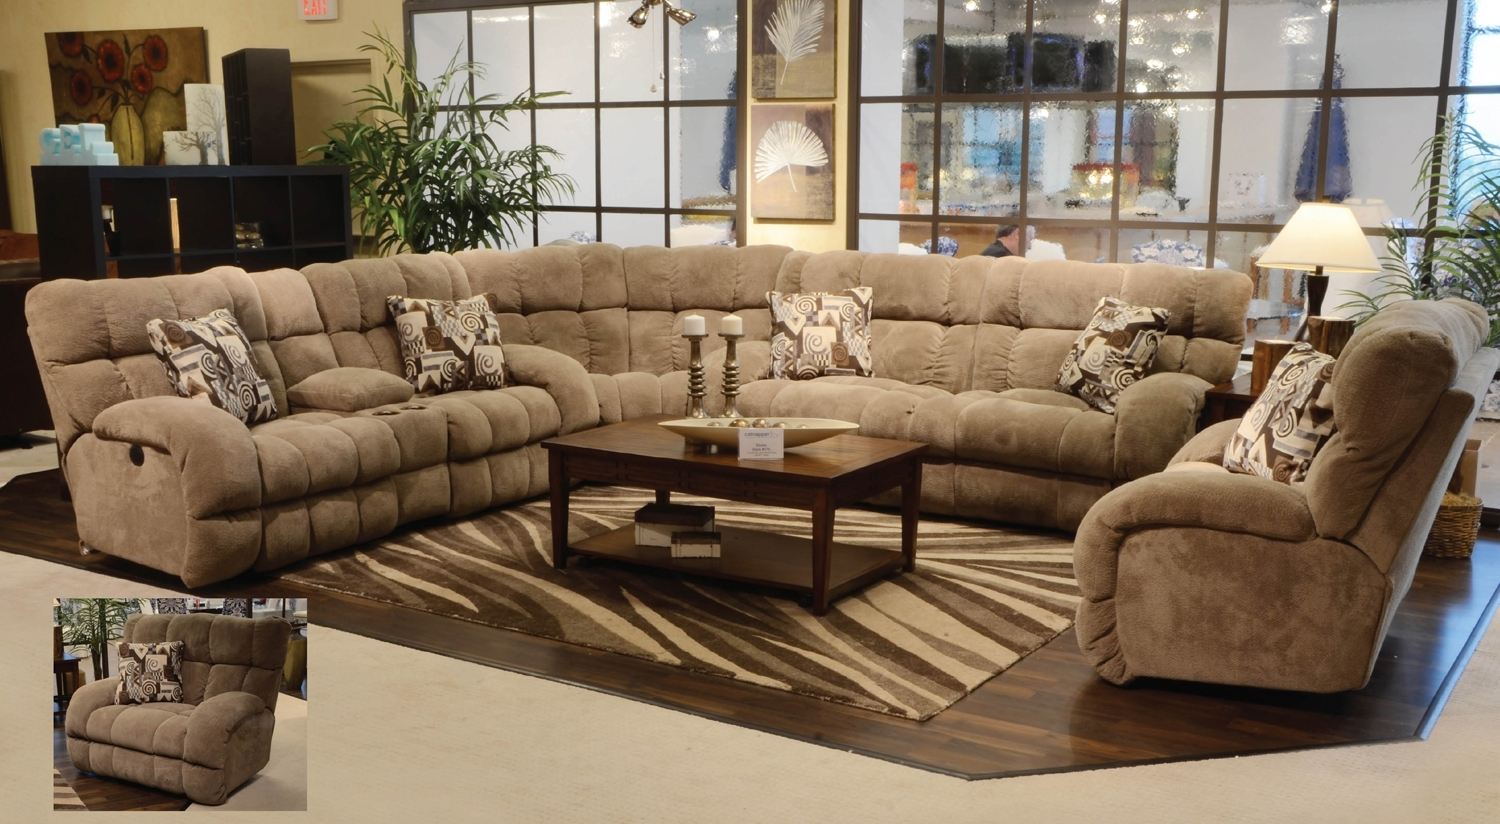 Furniture: Sofa Grey Sectional Sofa Extra Large Sectional Sofa Wide Intended For Wide Sectional Sofas (View 4 of 10)